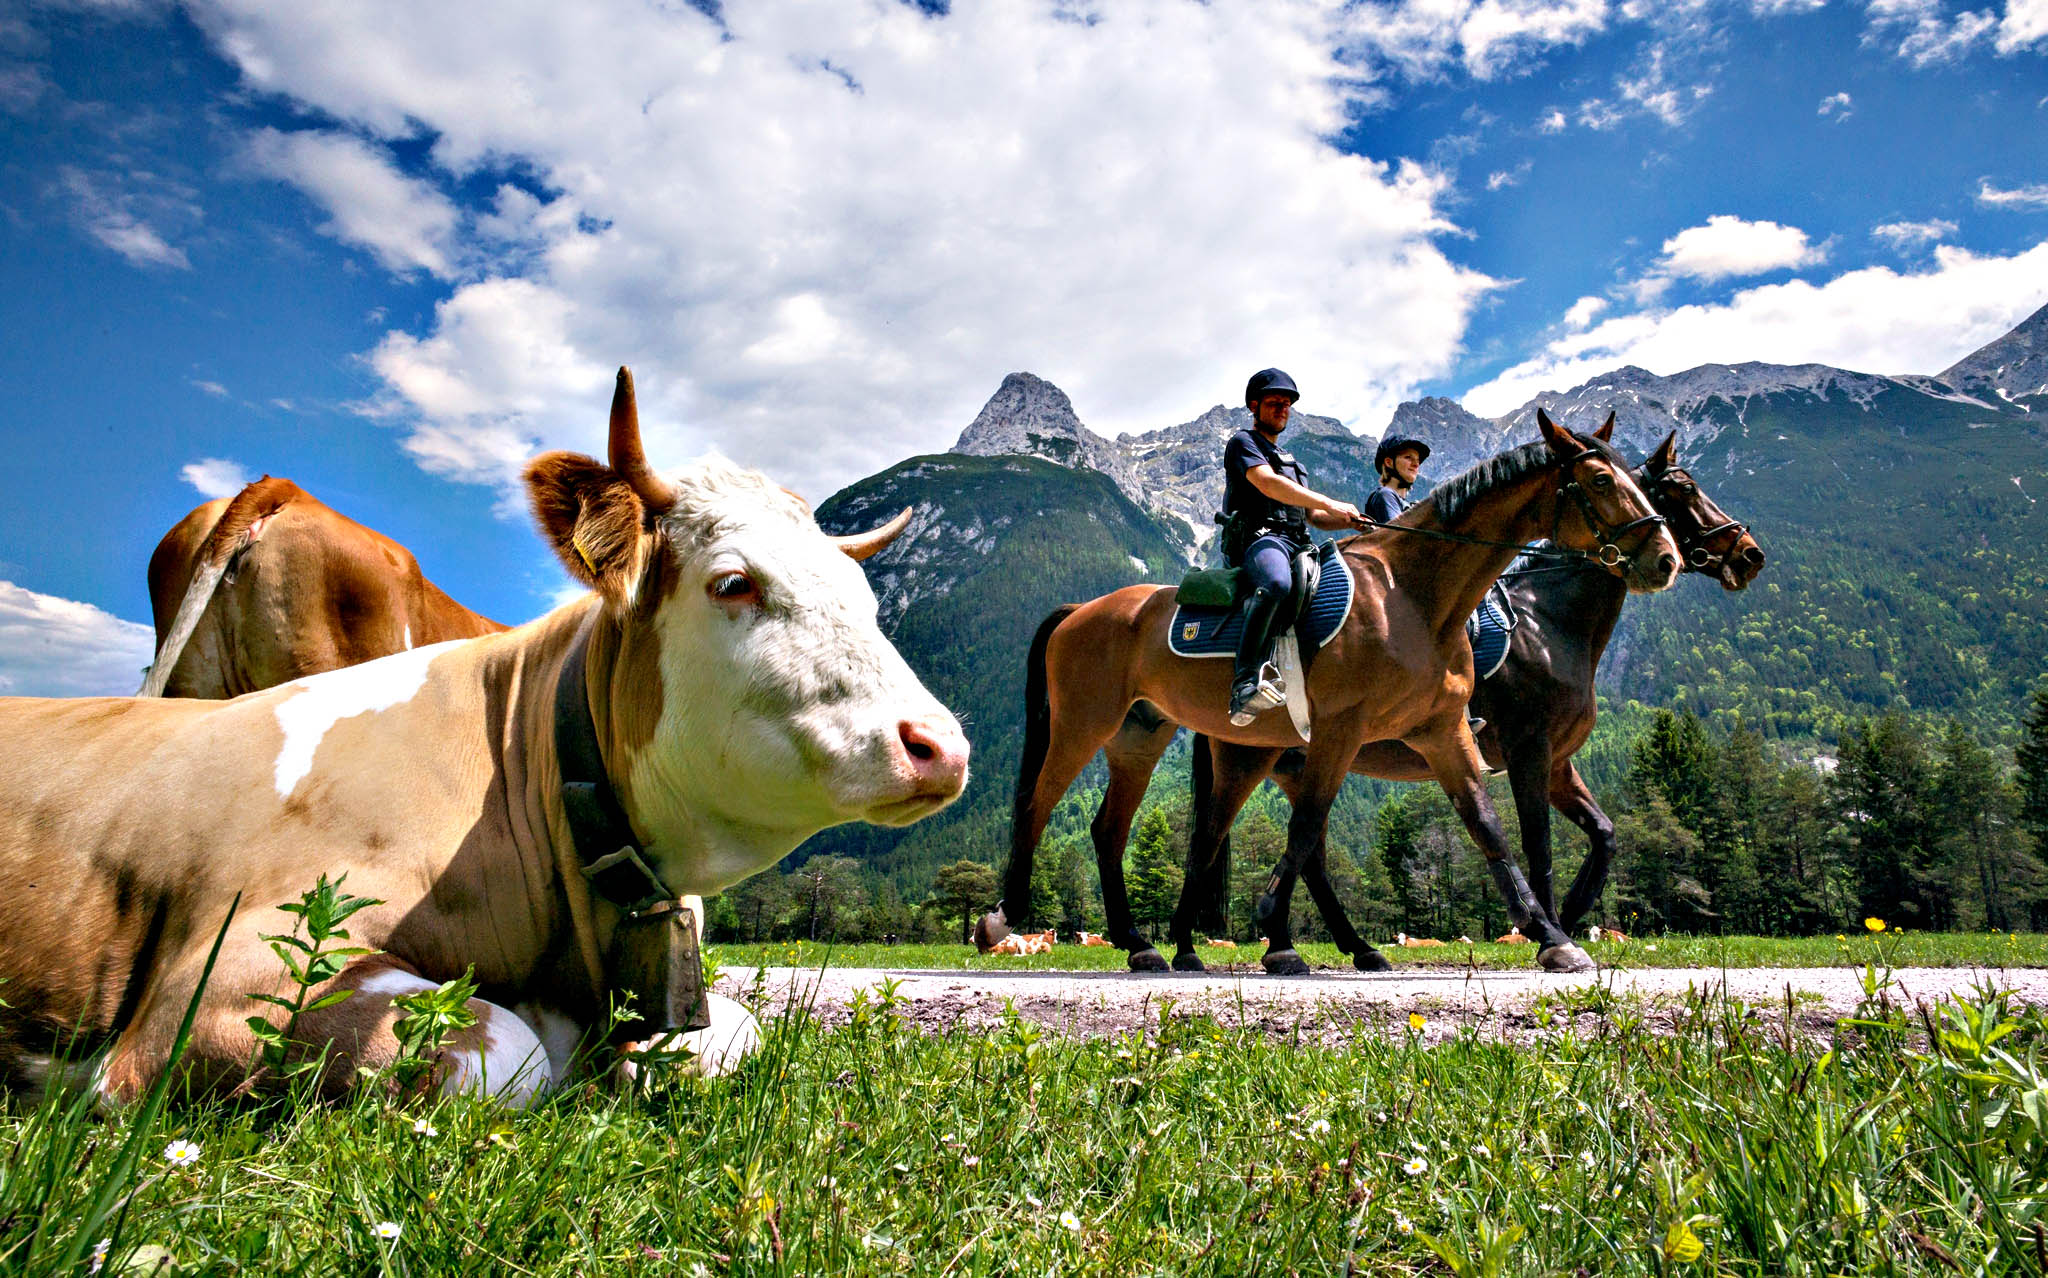 Two police officers with the Federal Police Riding Squad ride past a cow in the German-Austian border region near Mittenwald, Germany, 03 June 2015. Government leaders from the G7 countries are meeting for their summit meeting from 07 to 08 June 2015 in Schloss Elmau.